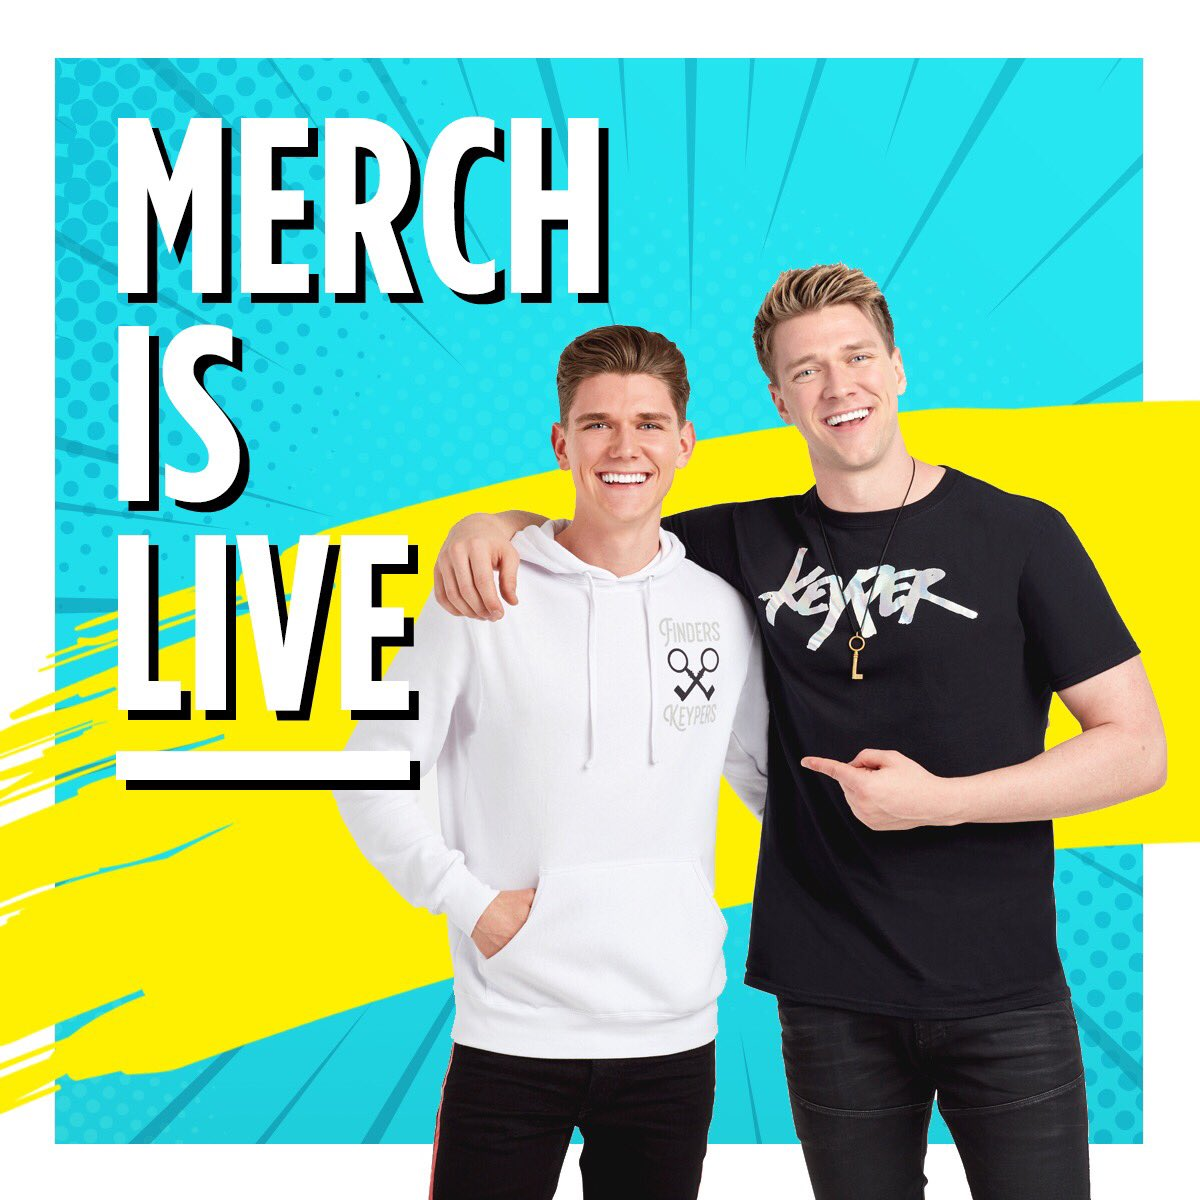 Collins Key merch is live